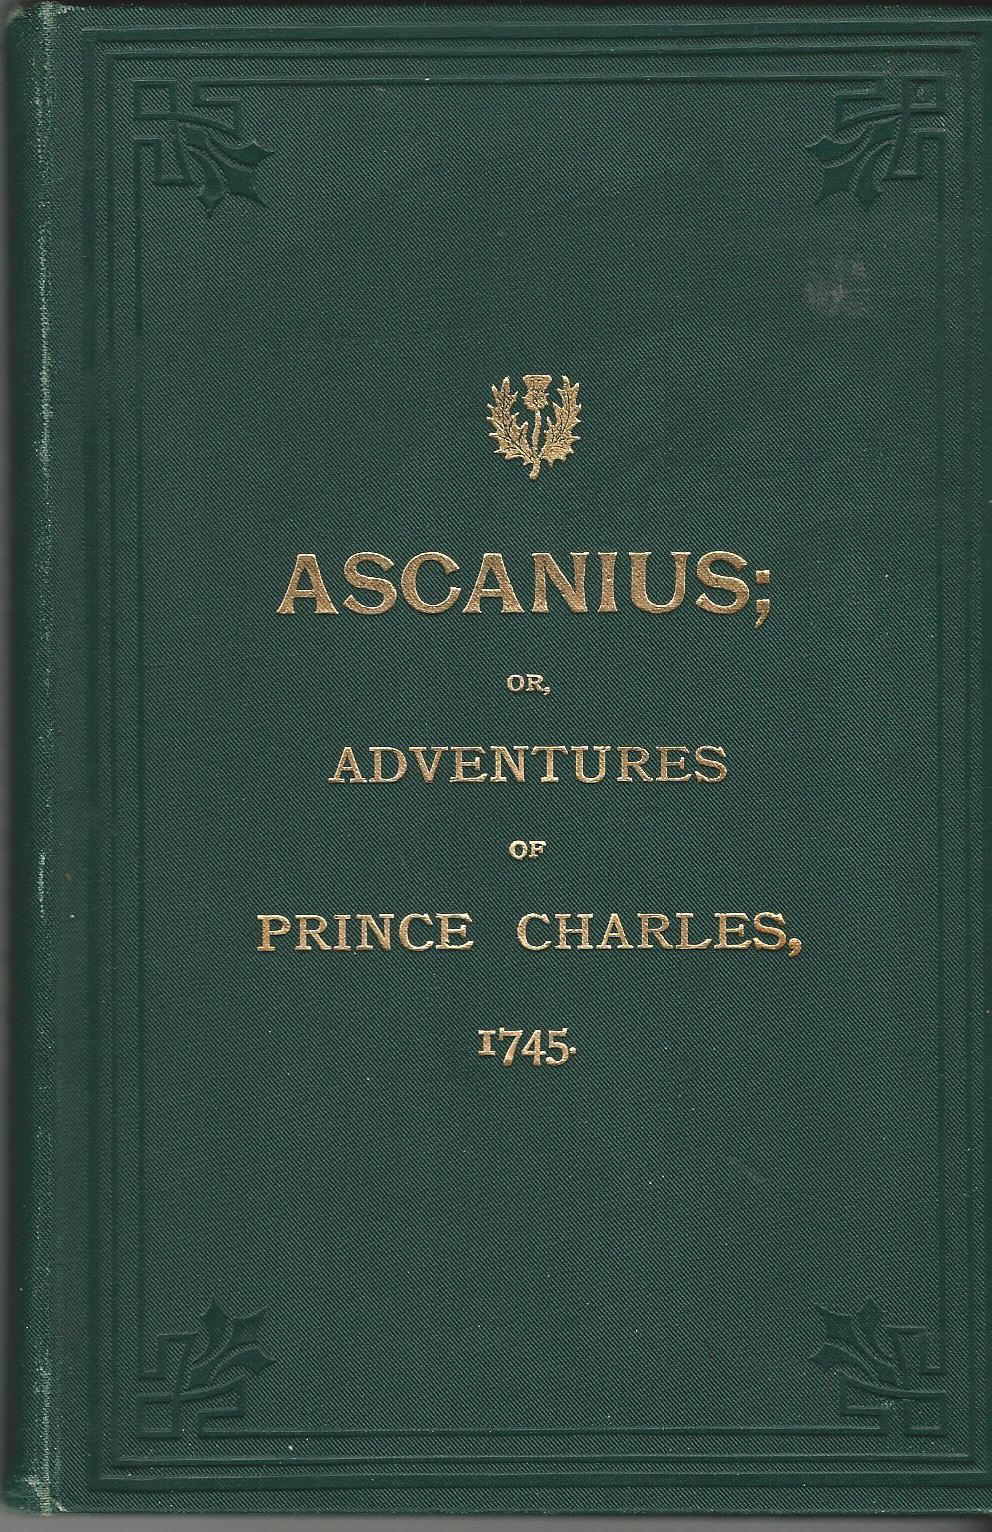 Image for Ascanius; or, The Young Adventurer: Countaining An Impertial History of the Rebellion in Scotland in the Years 1745, 1746; to which are added, A Journal of the Adventures and Miraculous Escape of the Young Chevalier and a description of the Manners of the Highlanders, their Dress, Armour, &c.